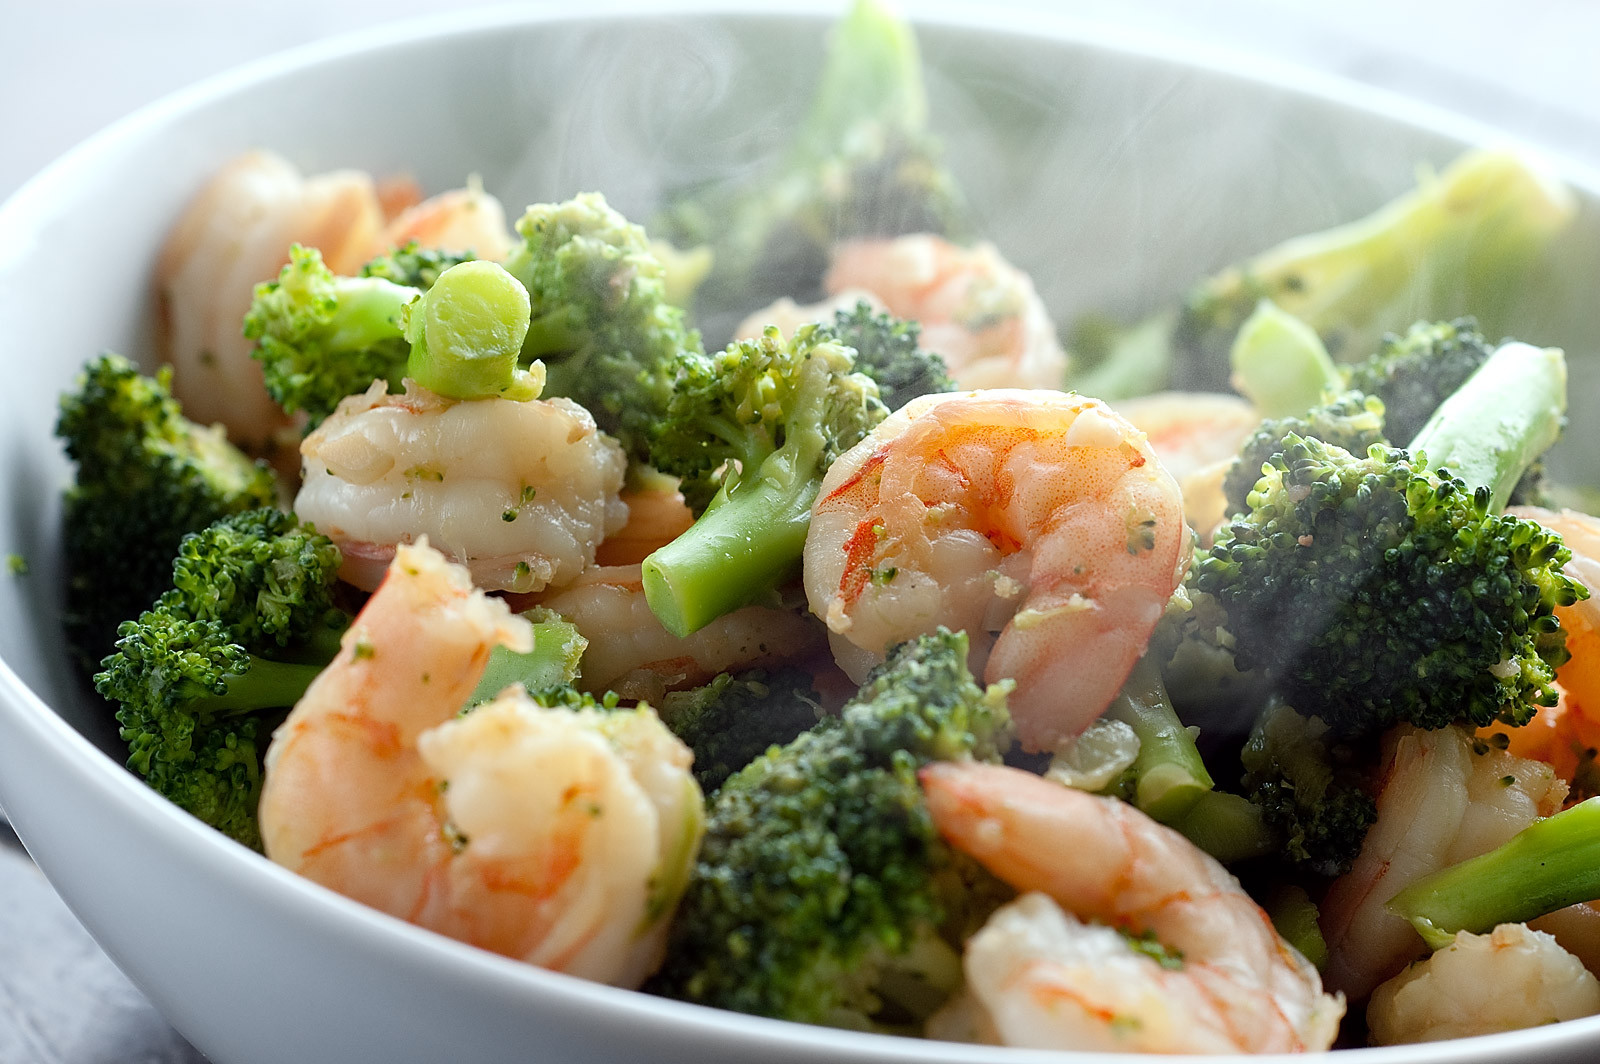 Low Calorie Shrimp Recipes  Recipes Low Carb Peanut Shrimp Stir Fry 250 Calories